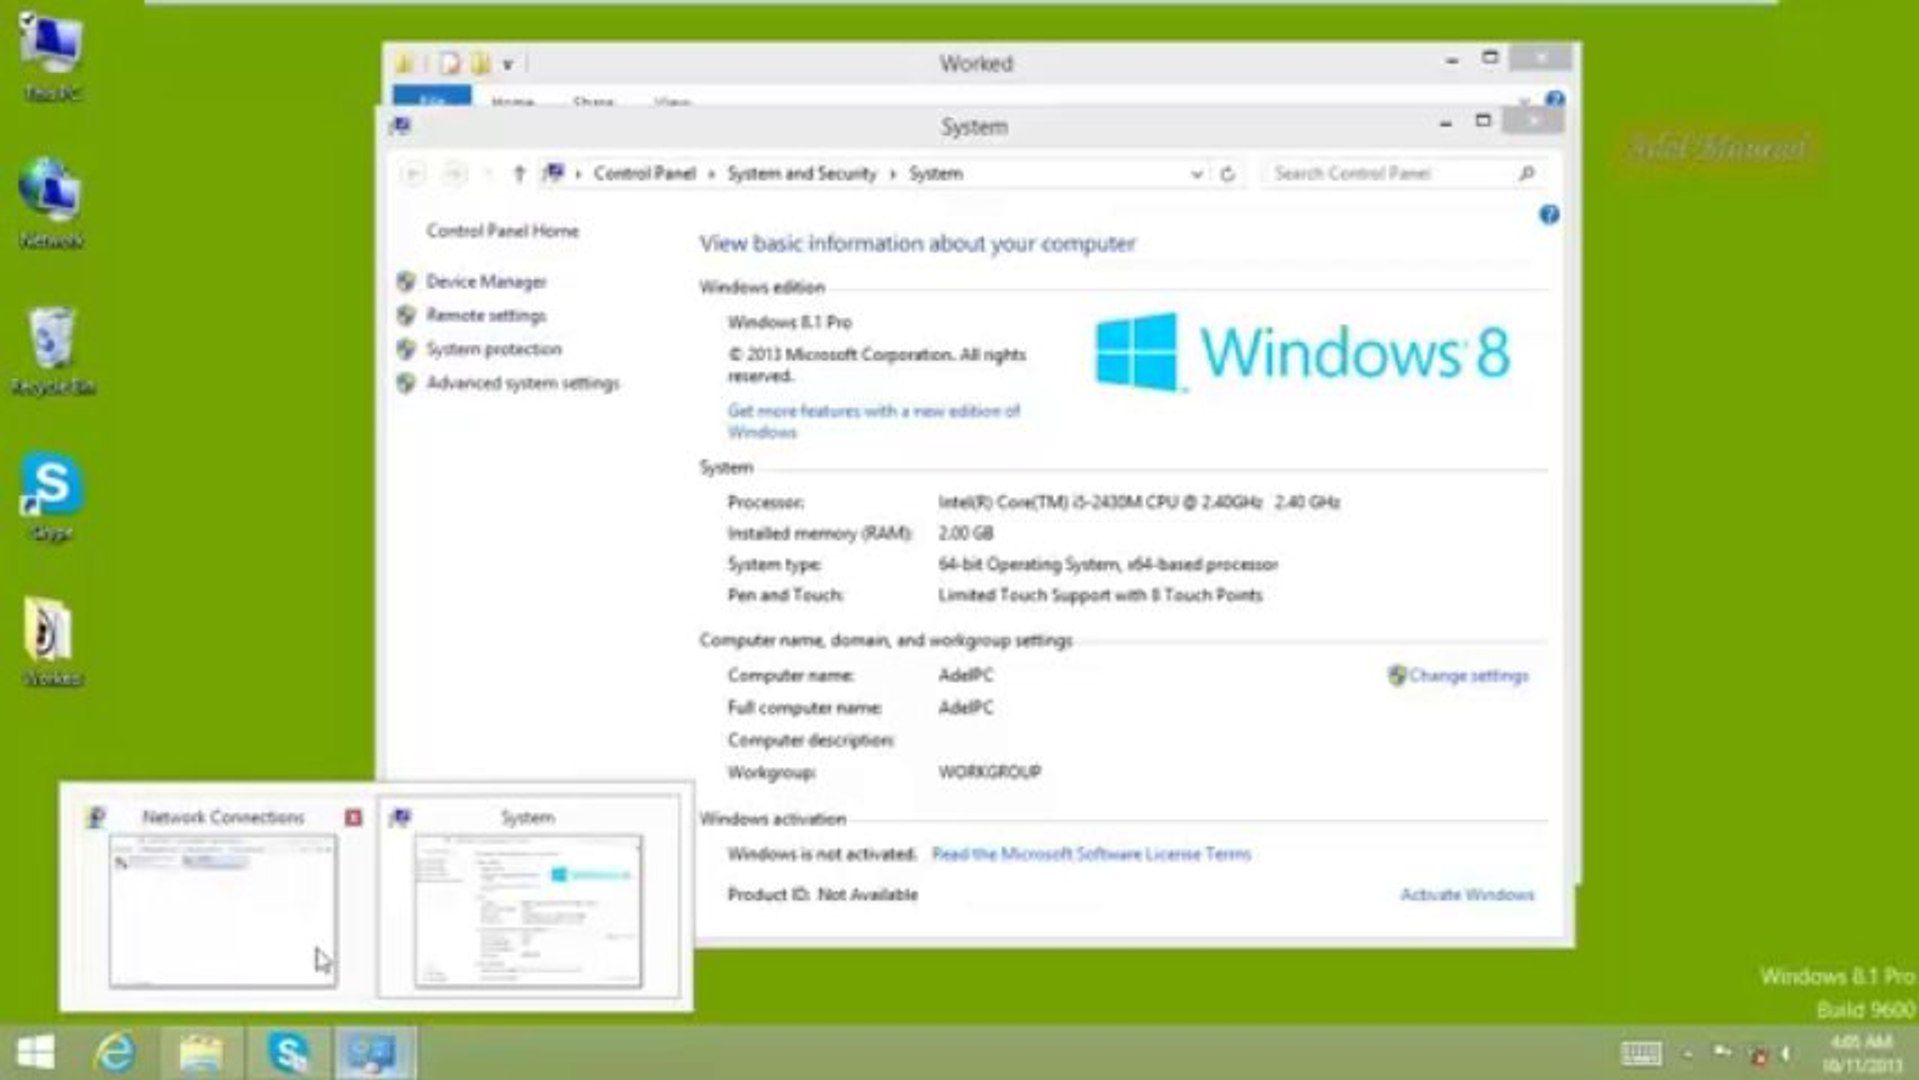 windows 8.1 pro build 9600 32 bit product key